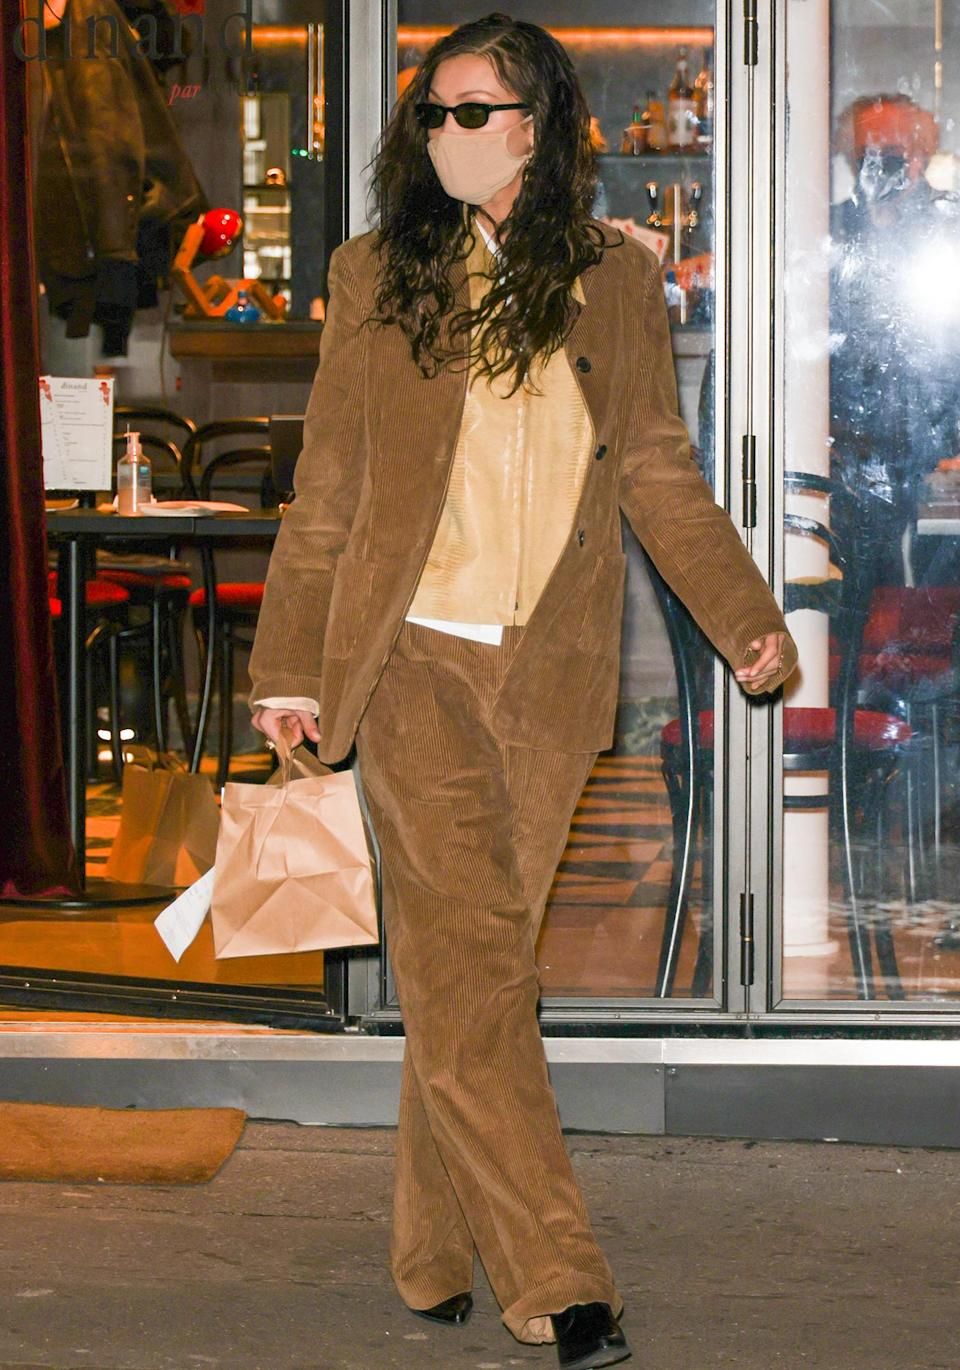 <p>Bella Hadid steps out in a brown blazer and matching trousers to pick up food from a restaurant in Paris on Tuesday.</p>